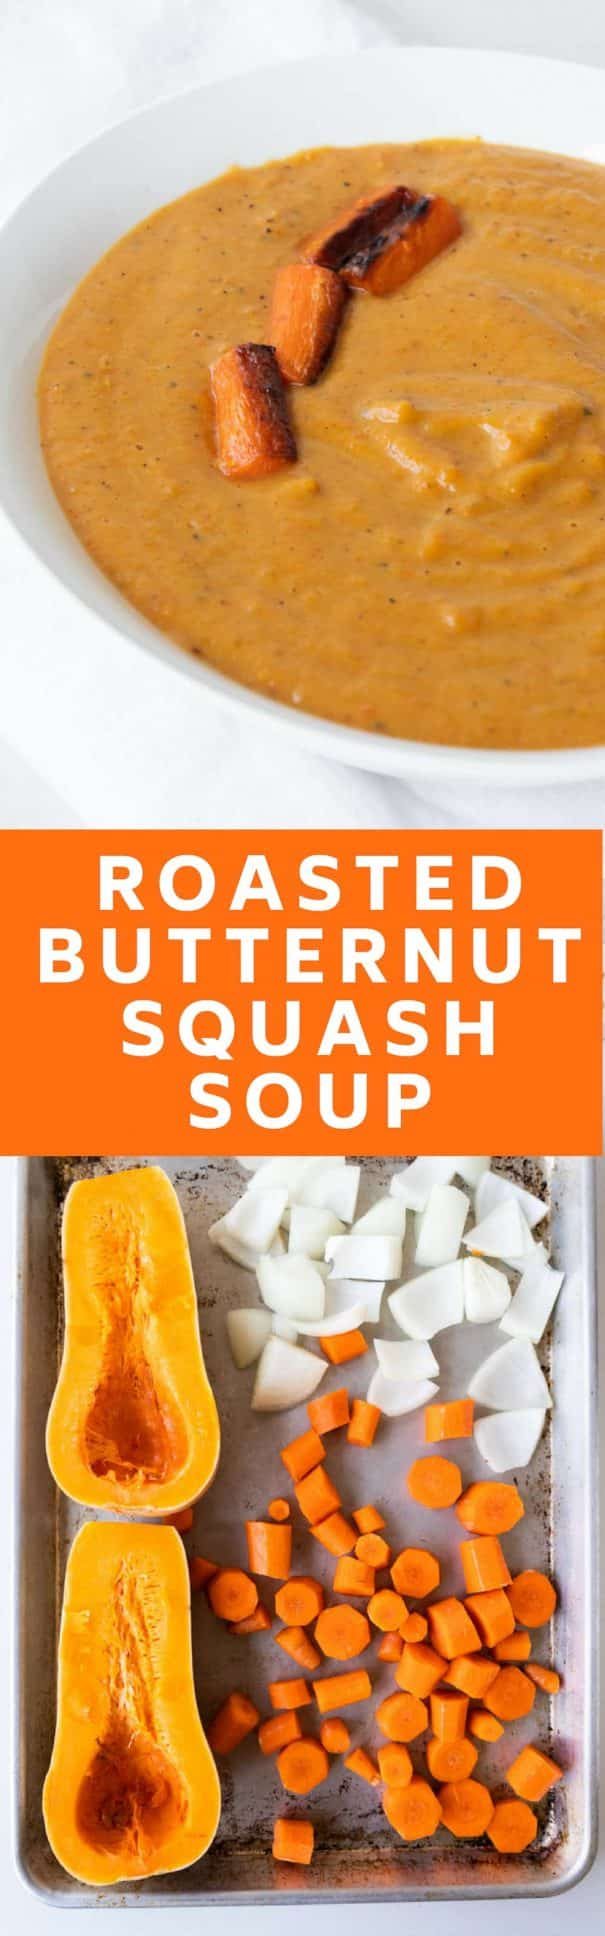 EASY to make Butternut Squash Soup that's only 310 calories a serving! Roasted squash, carrots and onions make this a healthy creamy soup! Best served with crusty bread! Vegan dairy free recipe option included.